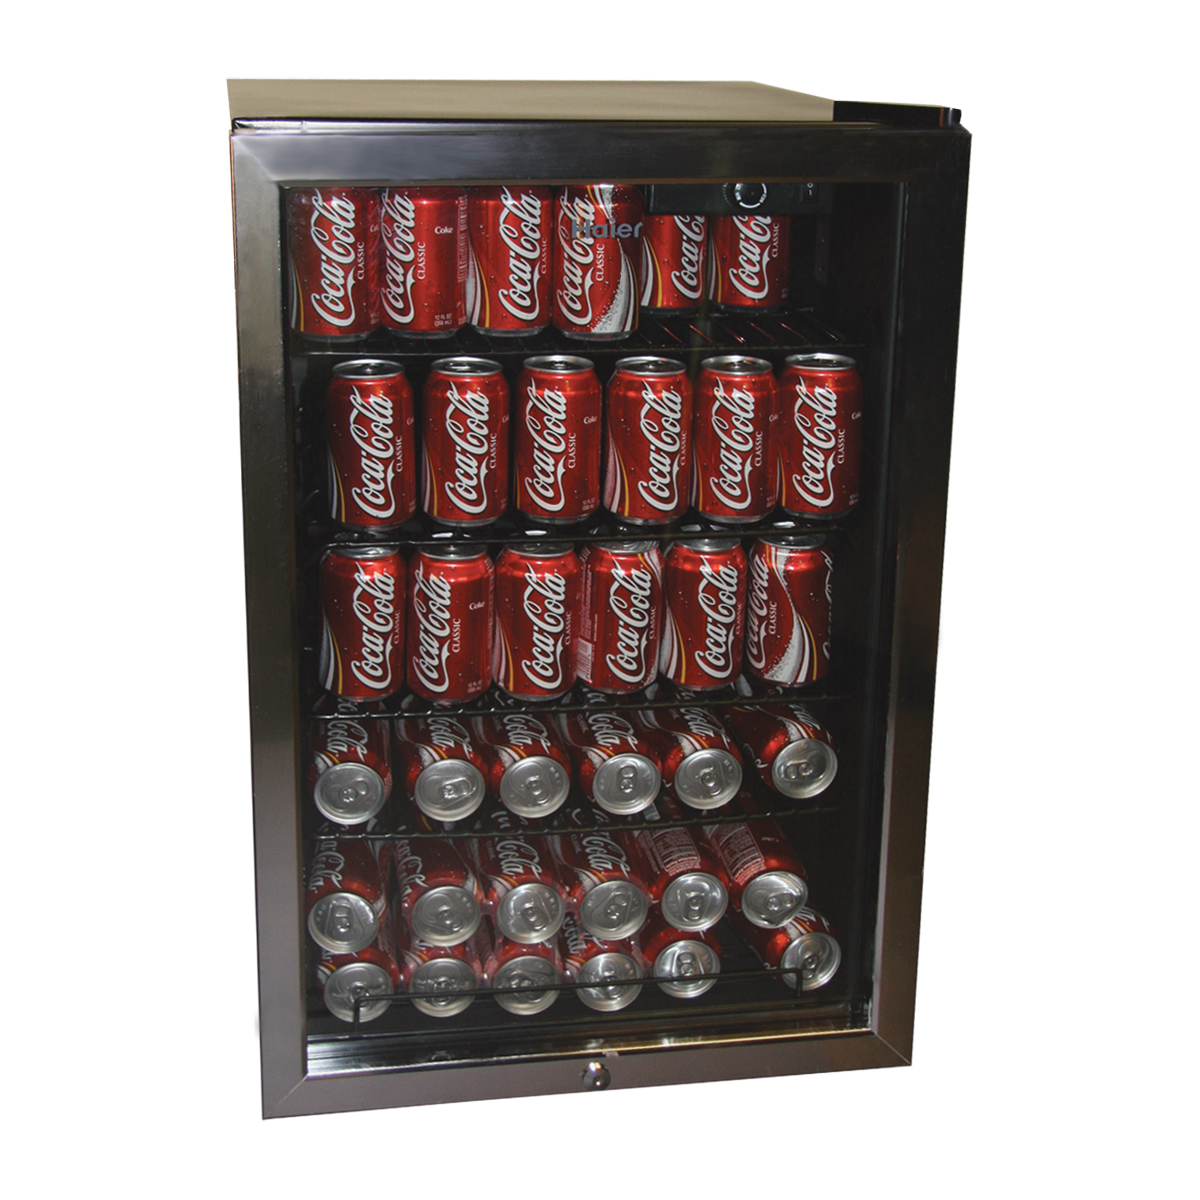 Haier HBCN05FVS Beverage Center outside look